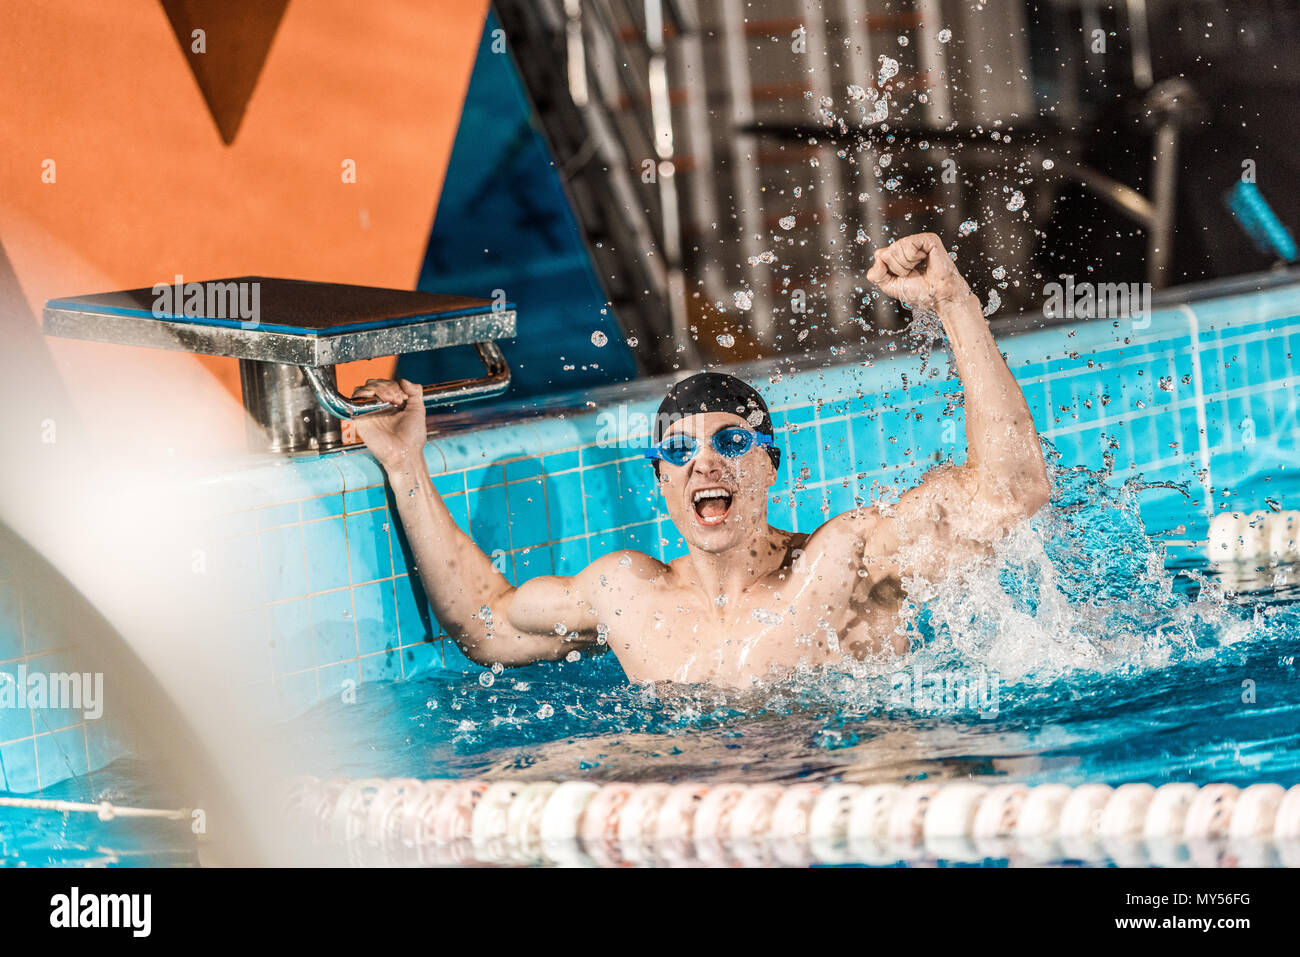 excited male winner in competition swimming pool - Stock Image